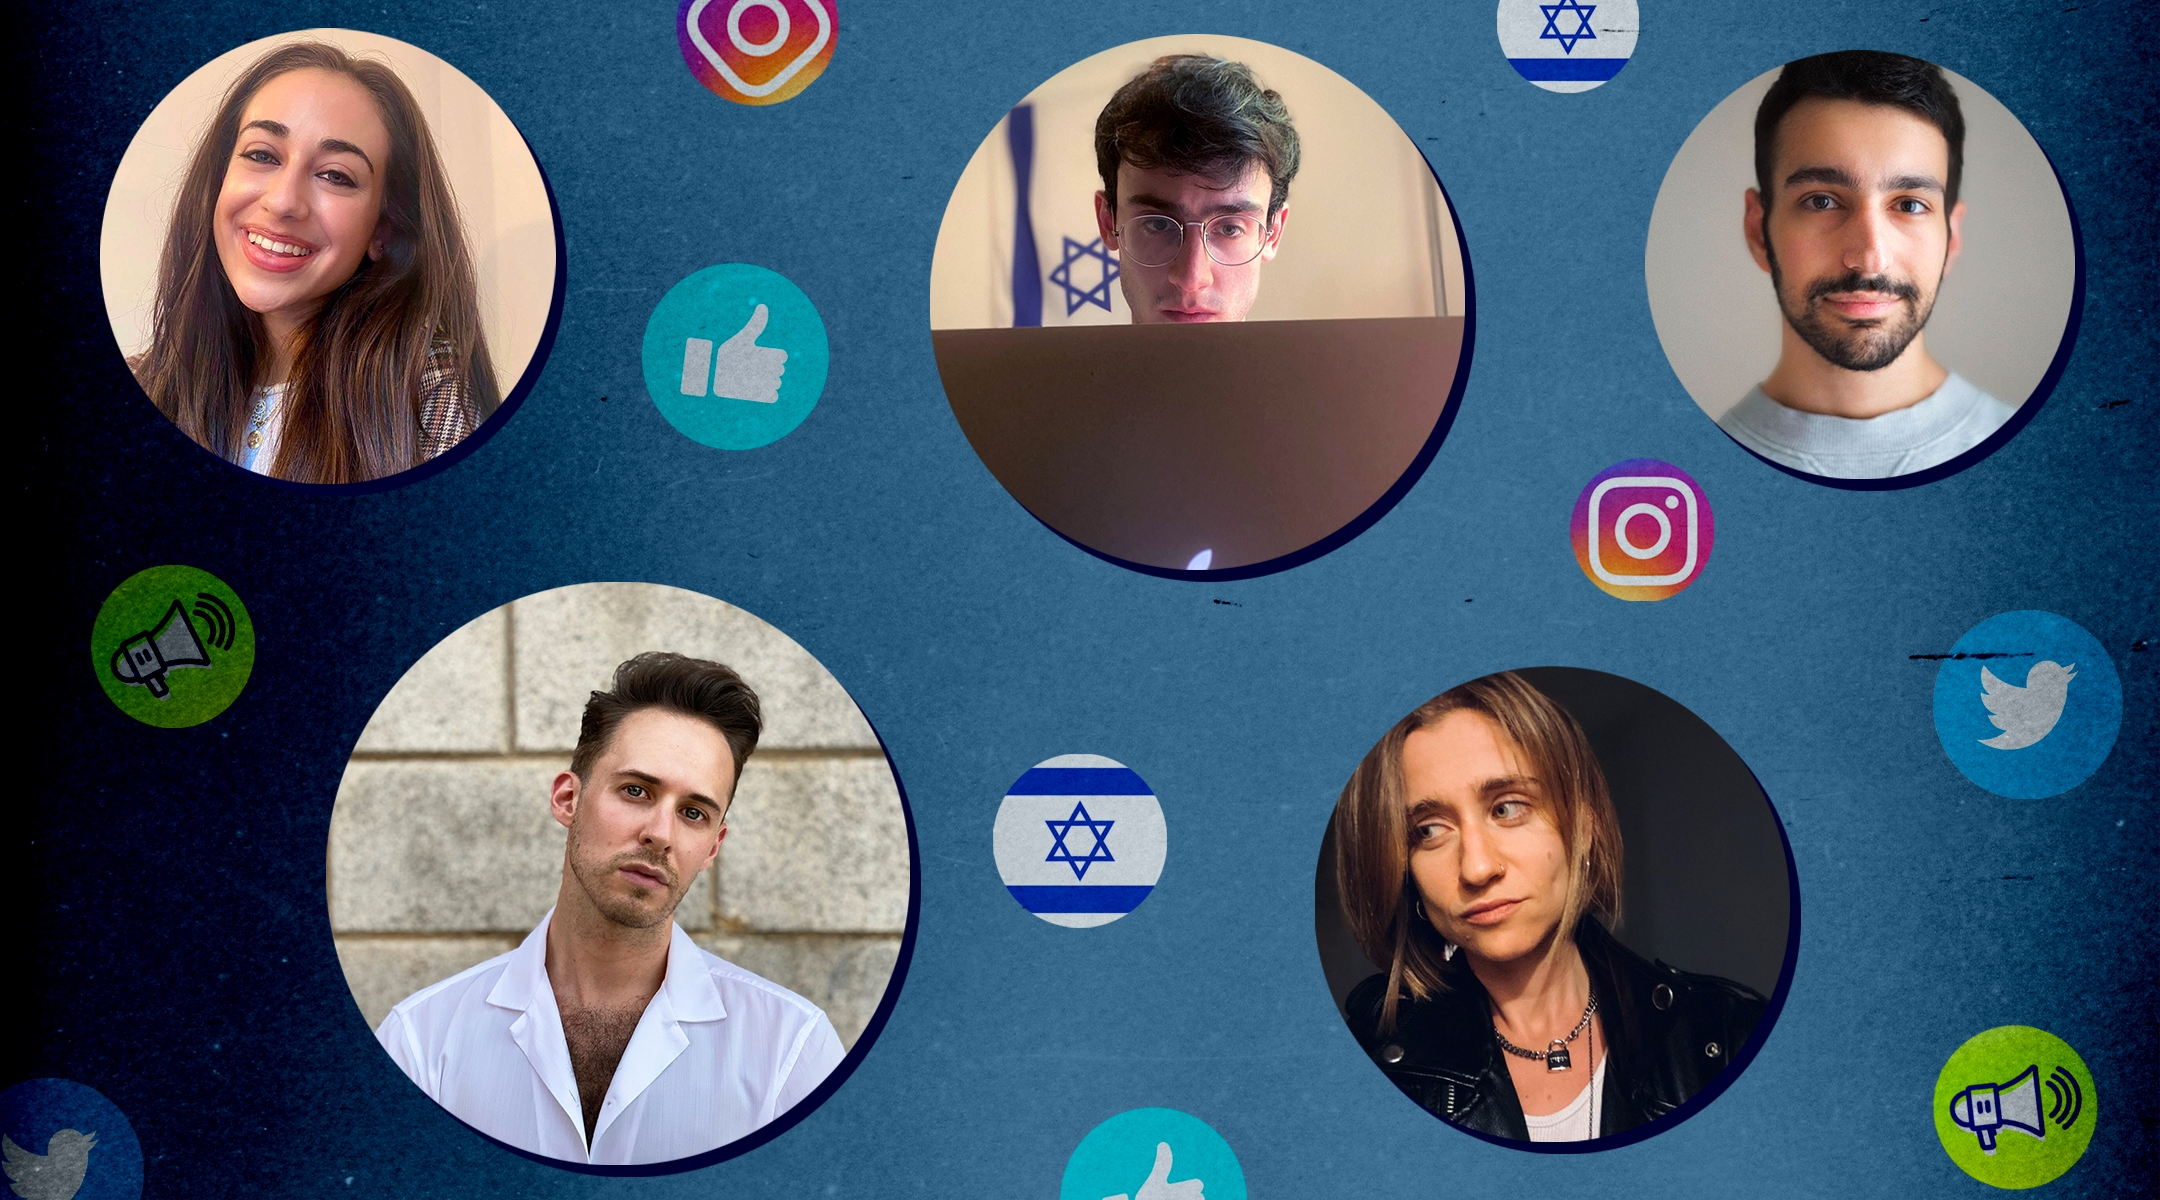 A cohort of young Jews is trying to combat antisemitism and anti-Zionism on social media. Clockwise from top left: Julia Jassey, Blake Flayton, Isaac de Castro, Eve Barlow, Ben Freeman. (Photo illustration by Grace Yagel)